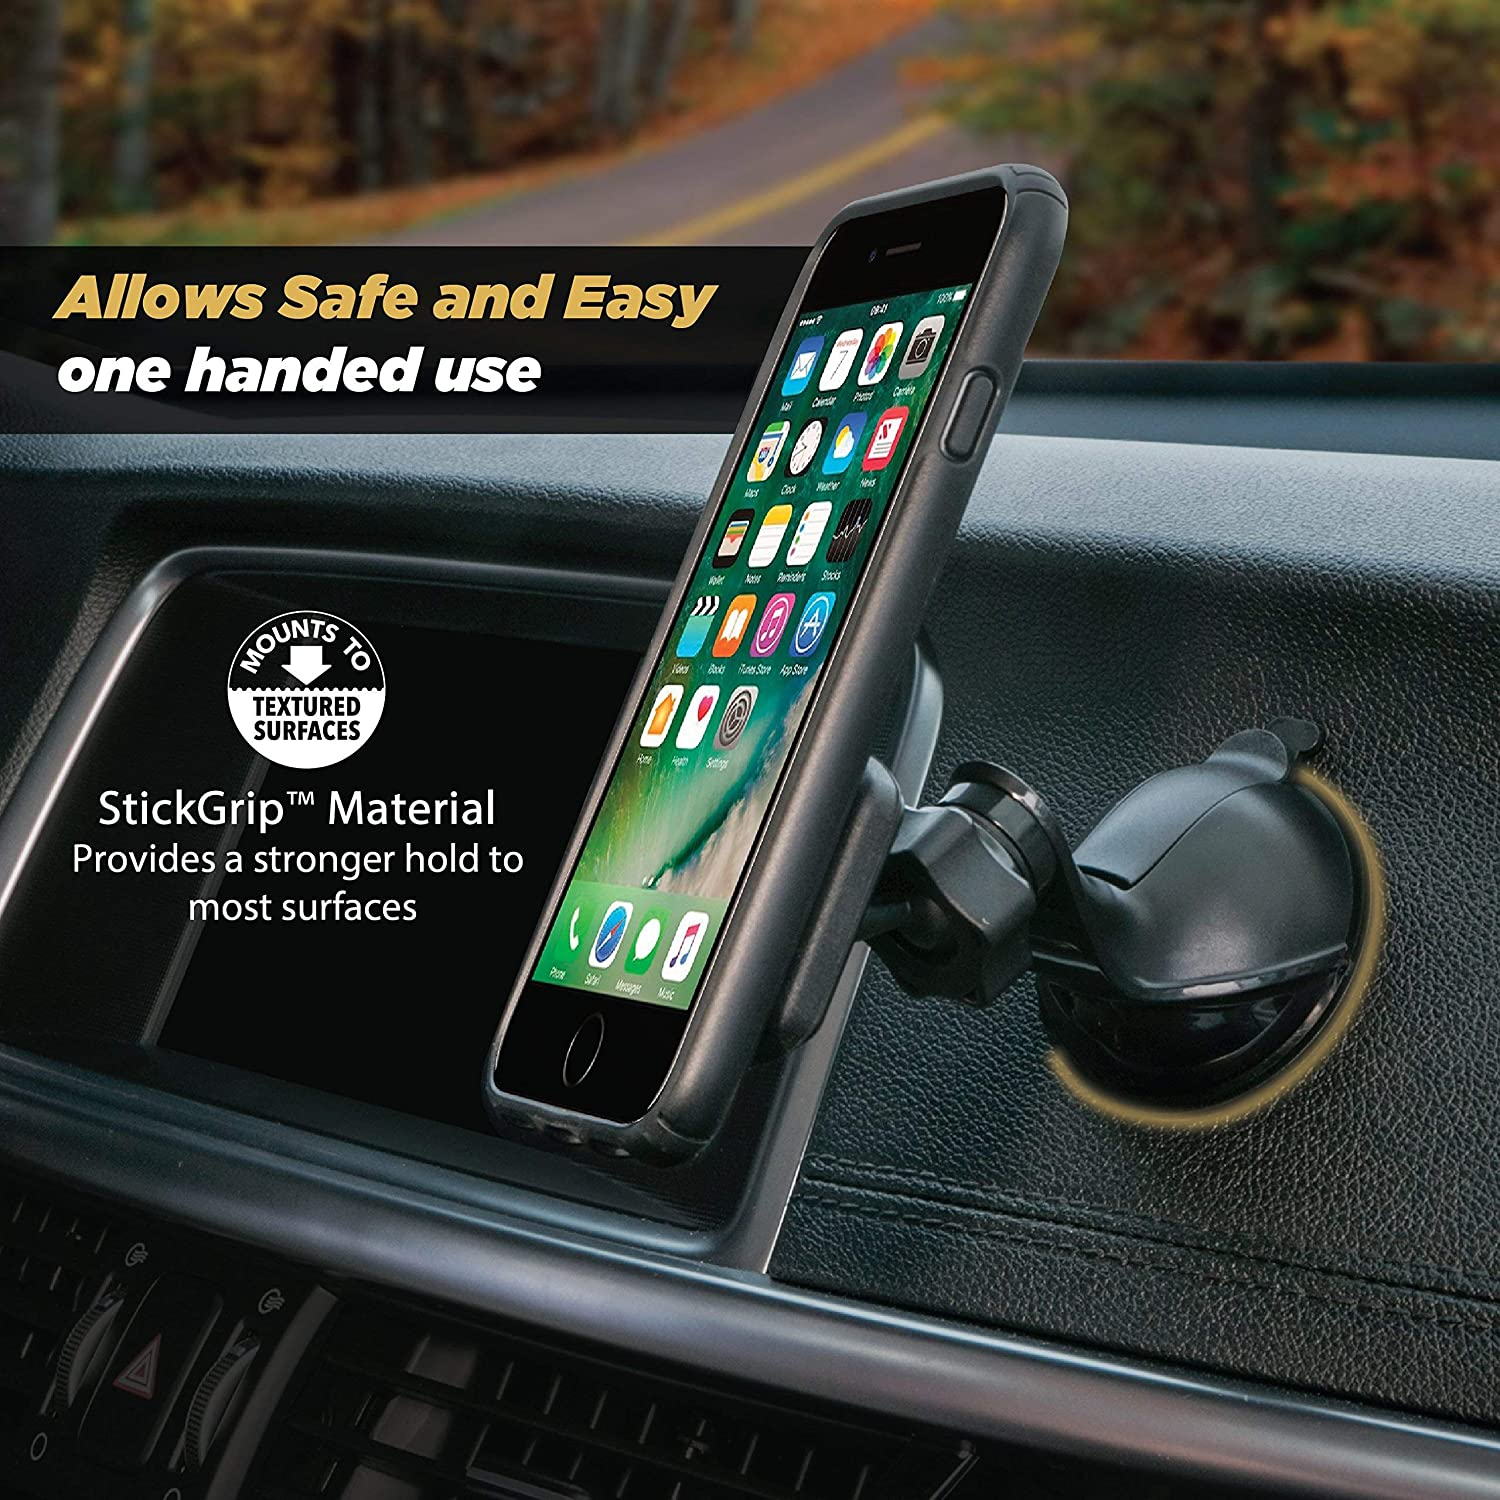 Home or Office Scosche® SCOSCHE MAGWSM-XTSP1 MagicMount Universal Magnetic Phone//GPS Suction Cup Mount for The Car